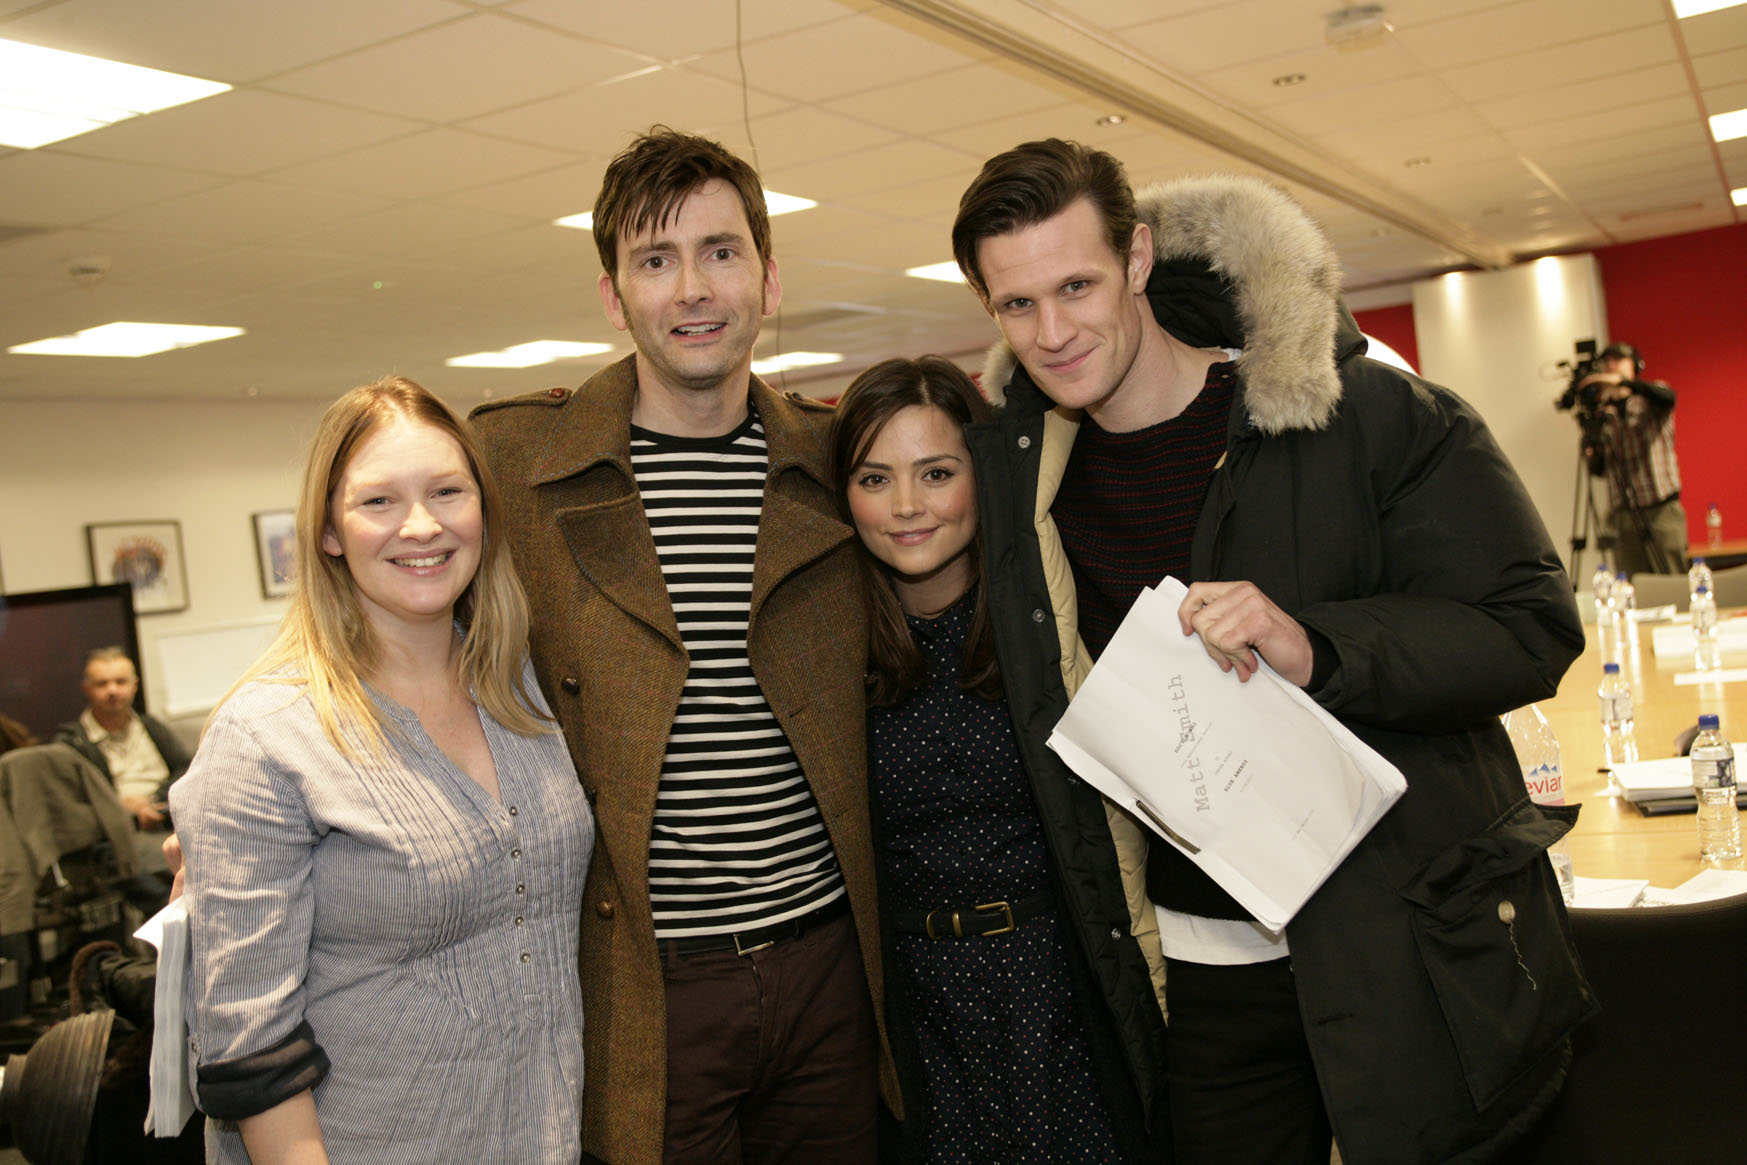 Joanna Page, David Tennant, Jenna-Louise Coleman, and Matt Smith at the read-through for the 'Doctor Who' 50th anniversary special. (Photo: BBC)